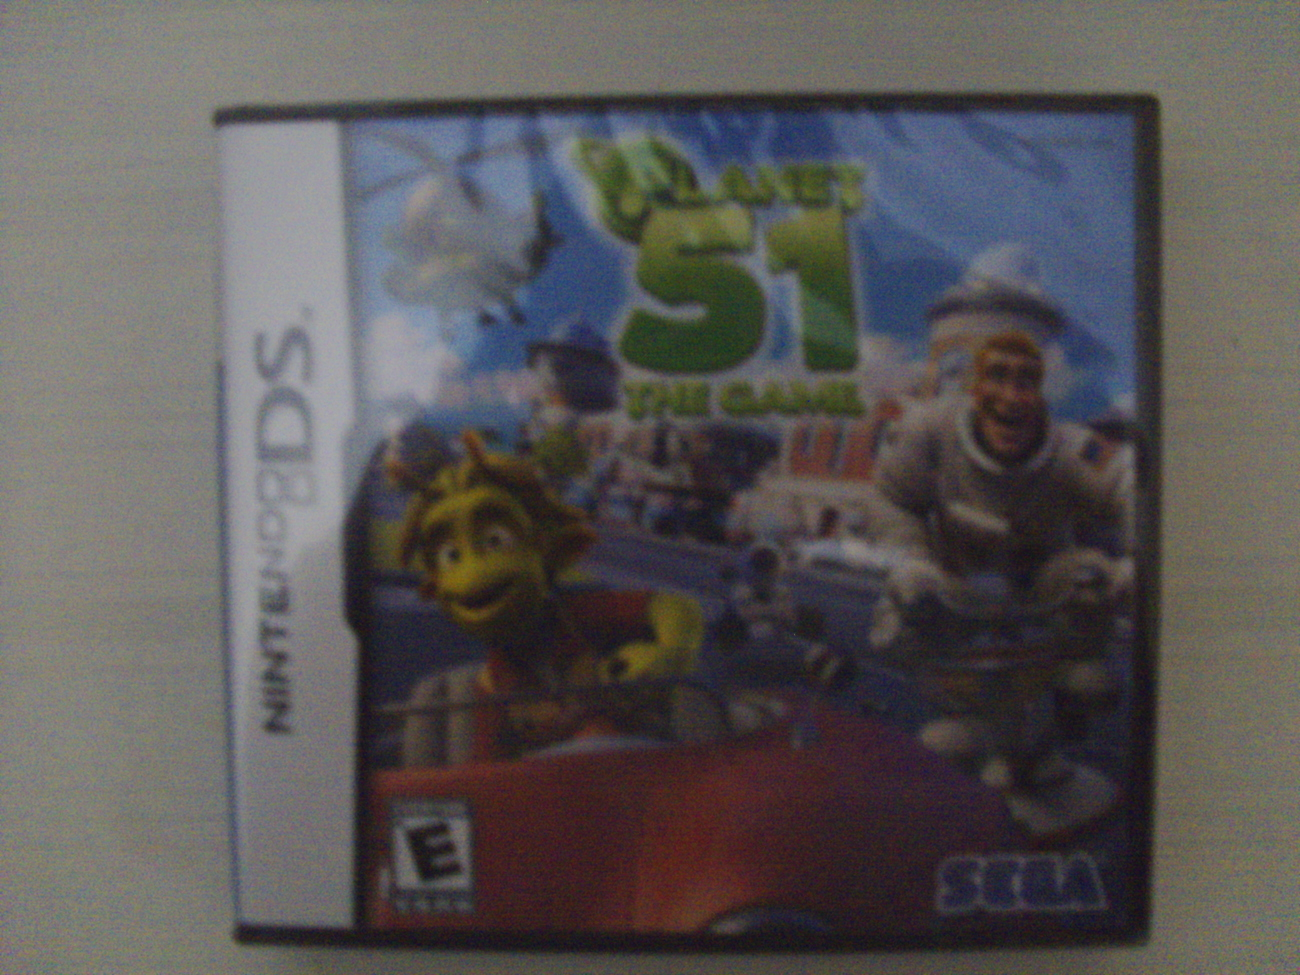 Planet 51 The Game Nintendo DS DSi - New